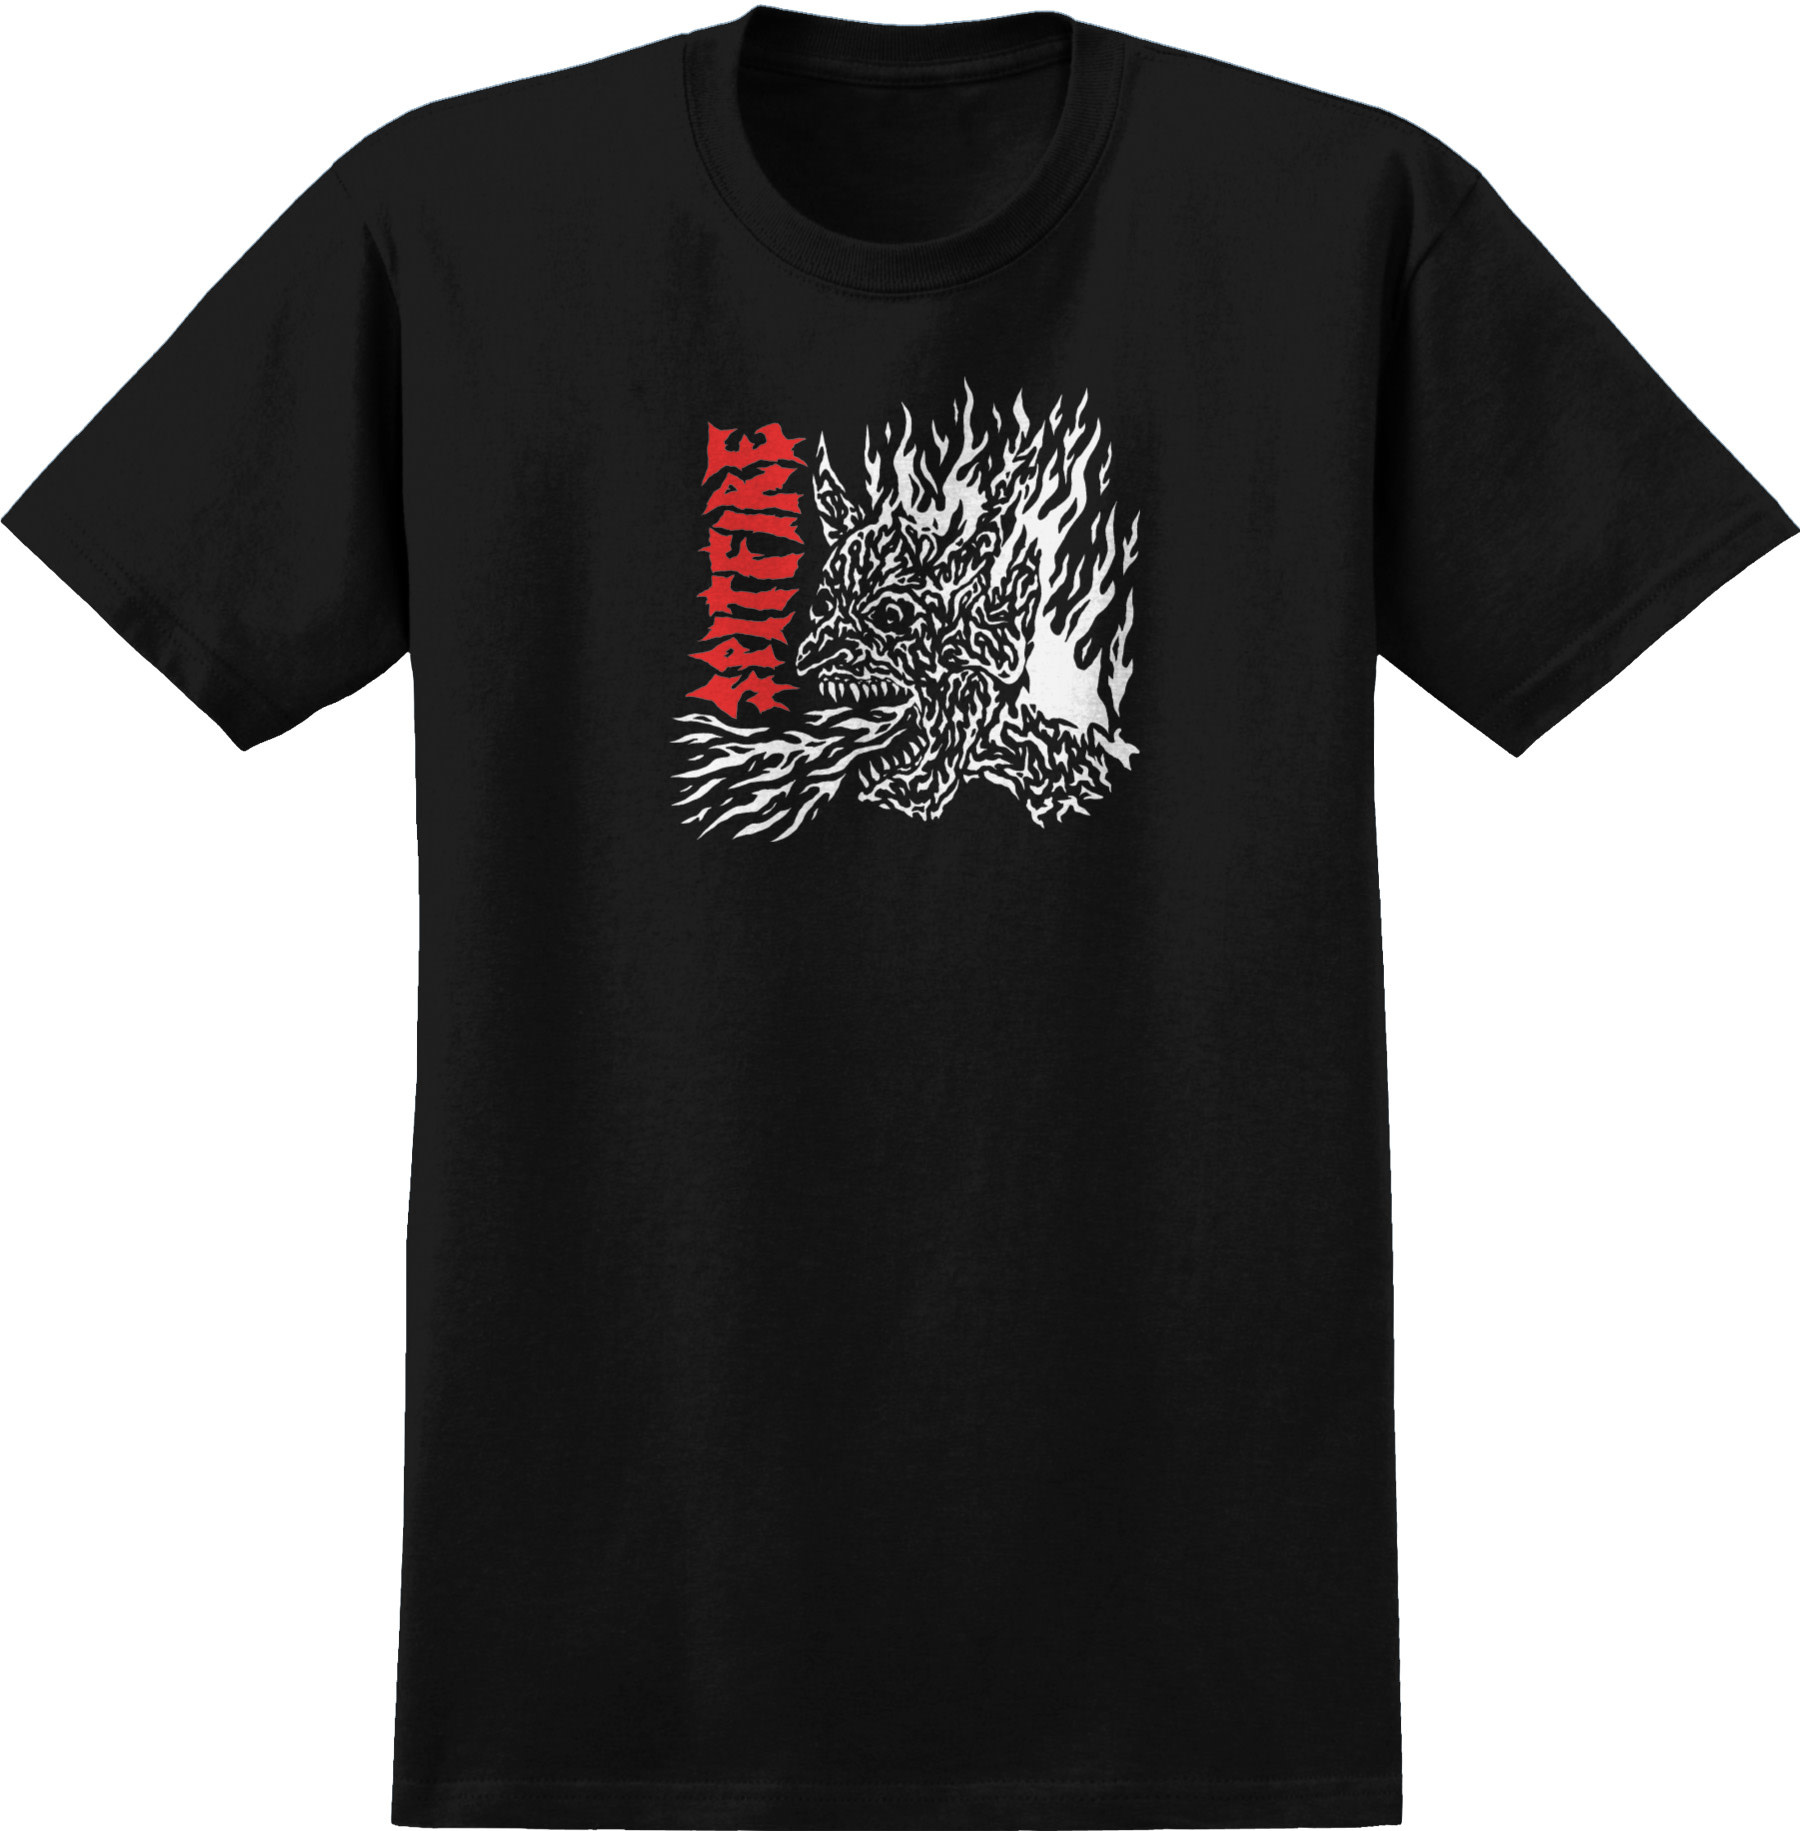 Spitfire Wheels Spitfire x Lotties Fiend Tee Black/Red